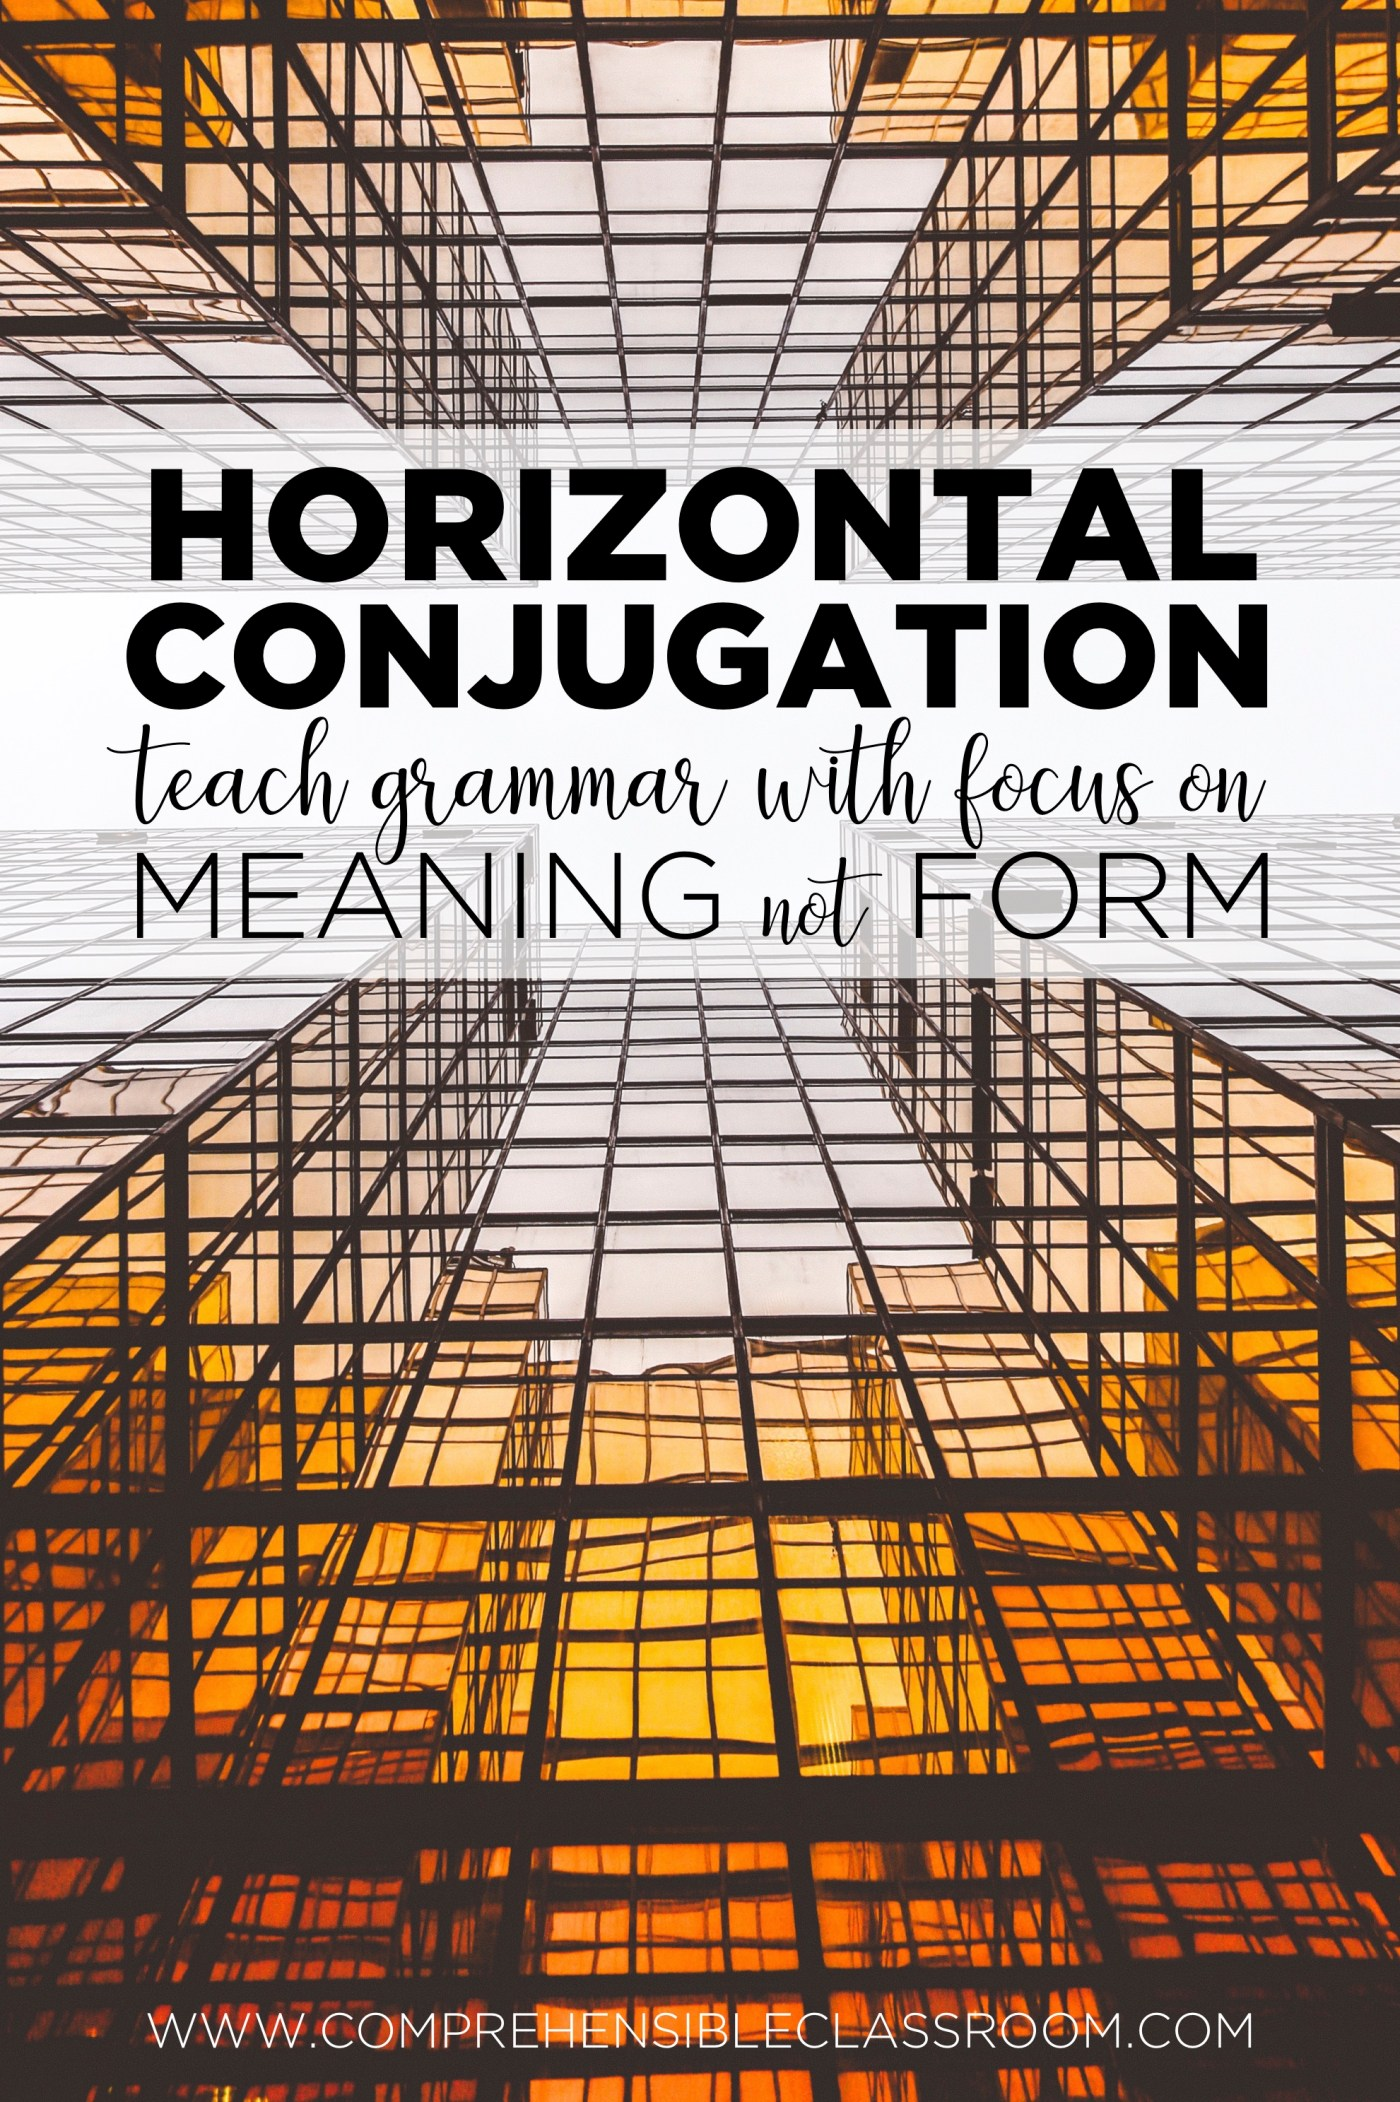 A horizontal conjugation is a way for language students to attend to the grammar and syntax of a language by considering a text in its entirety--keeping the focus on MEANING, not FORM. Learn more at www.comprehensibleclassroom.com